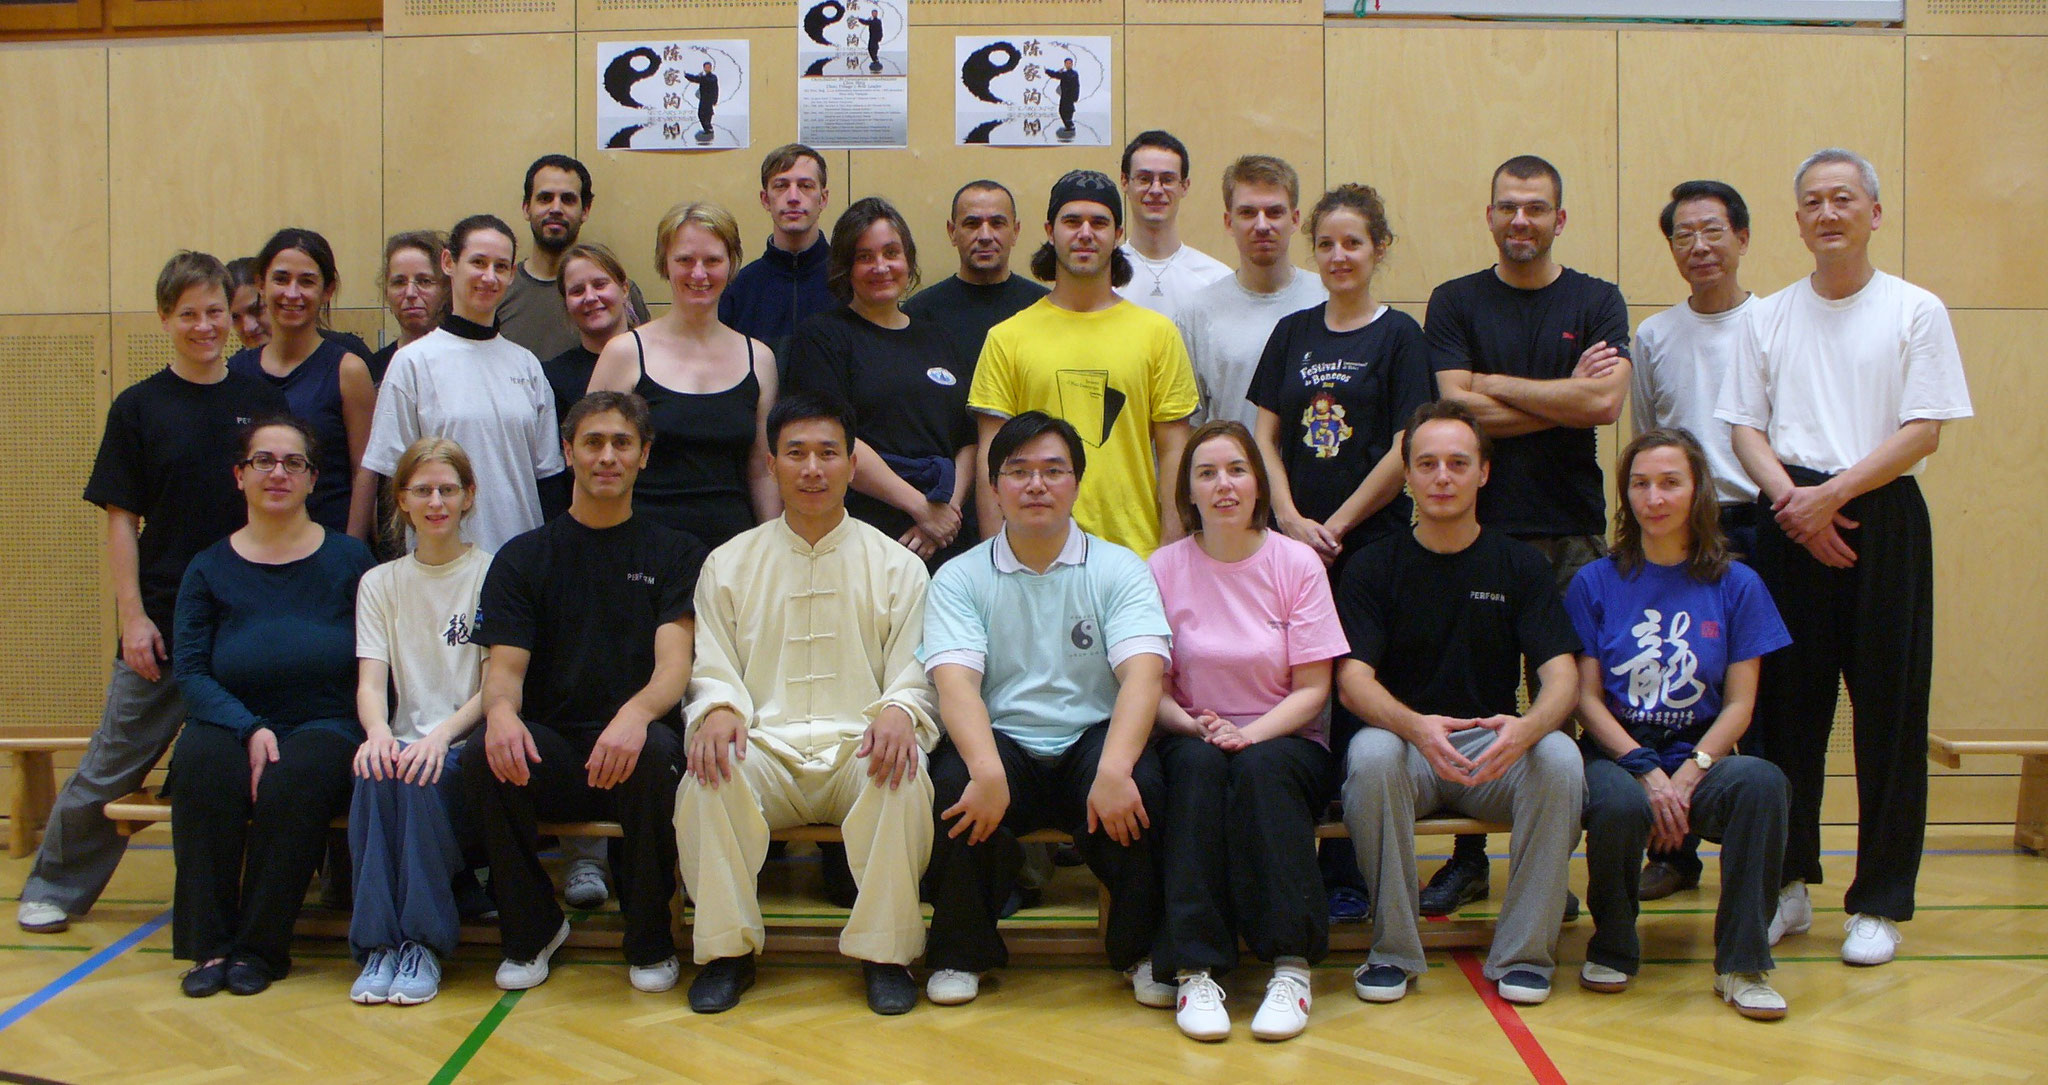 2011 Chen Bing Ceta Workshop Vienna